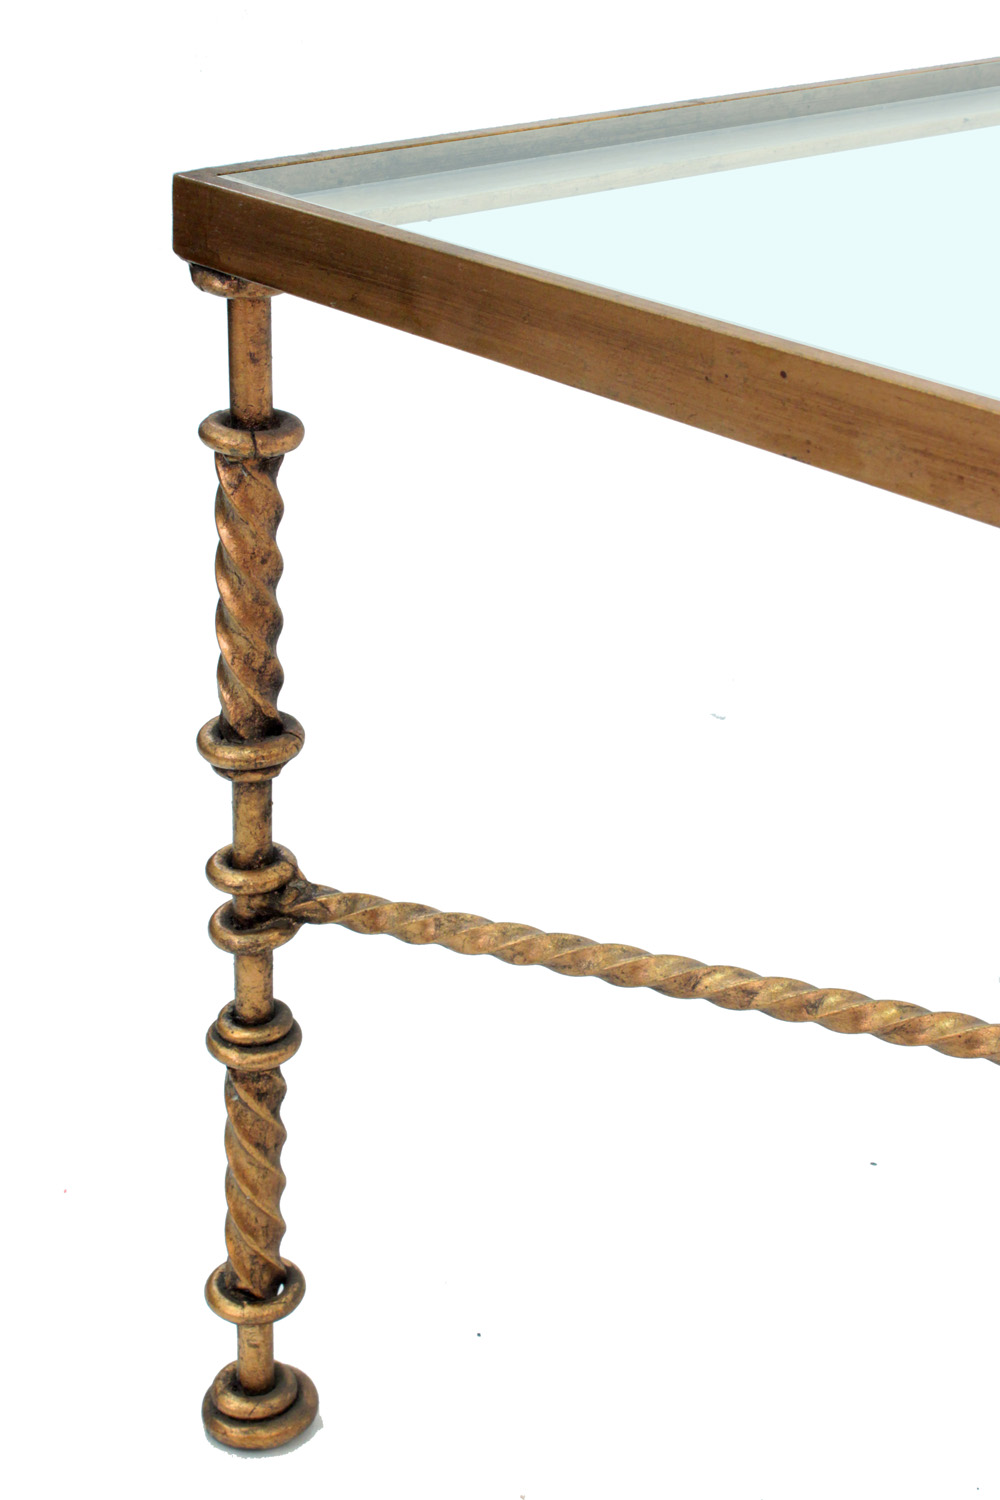 70s 75 twisted bronze stretchers coffeetable353 detail2 hires.jpg